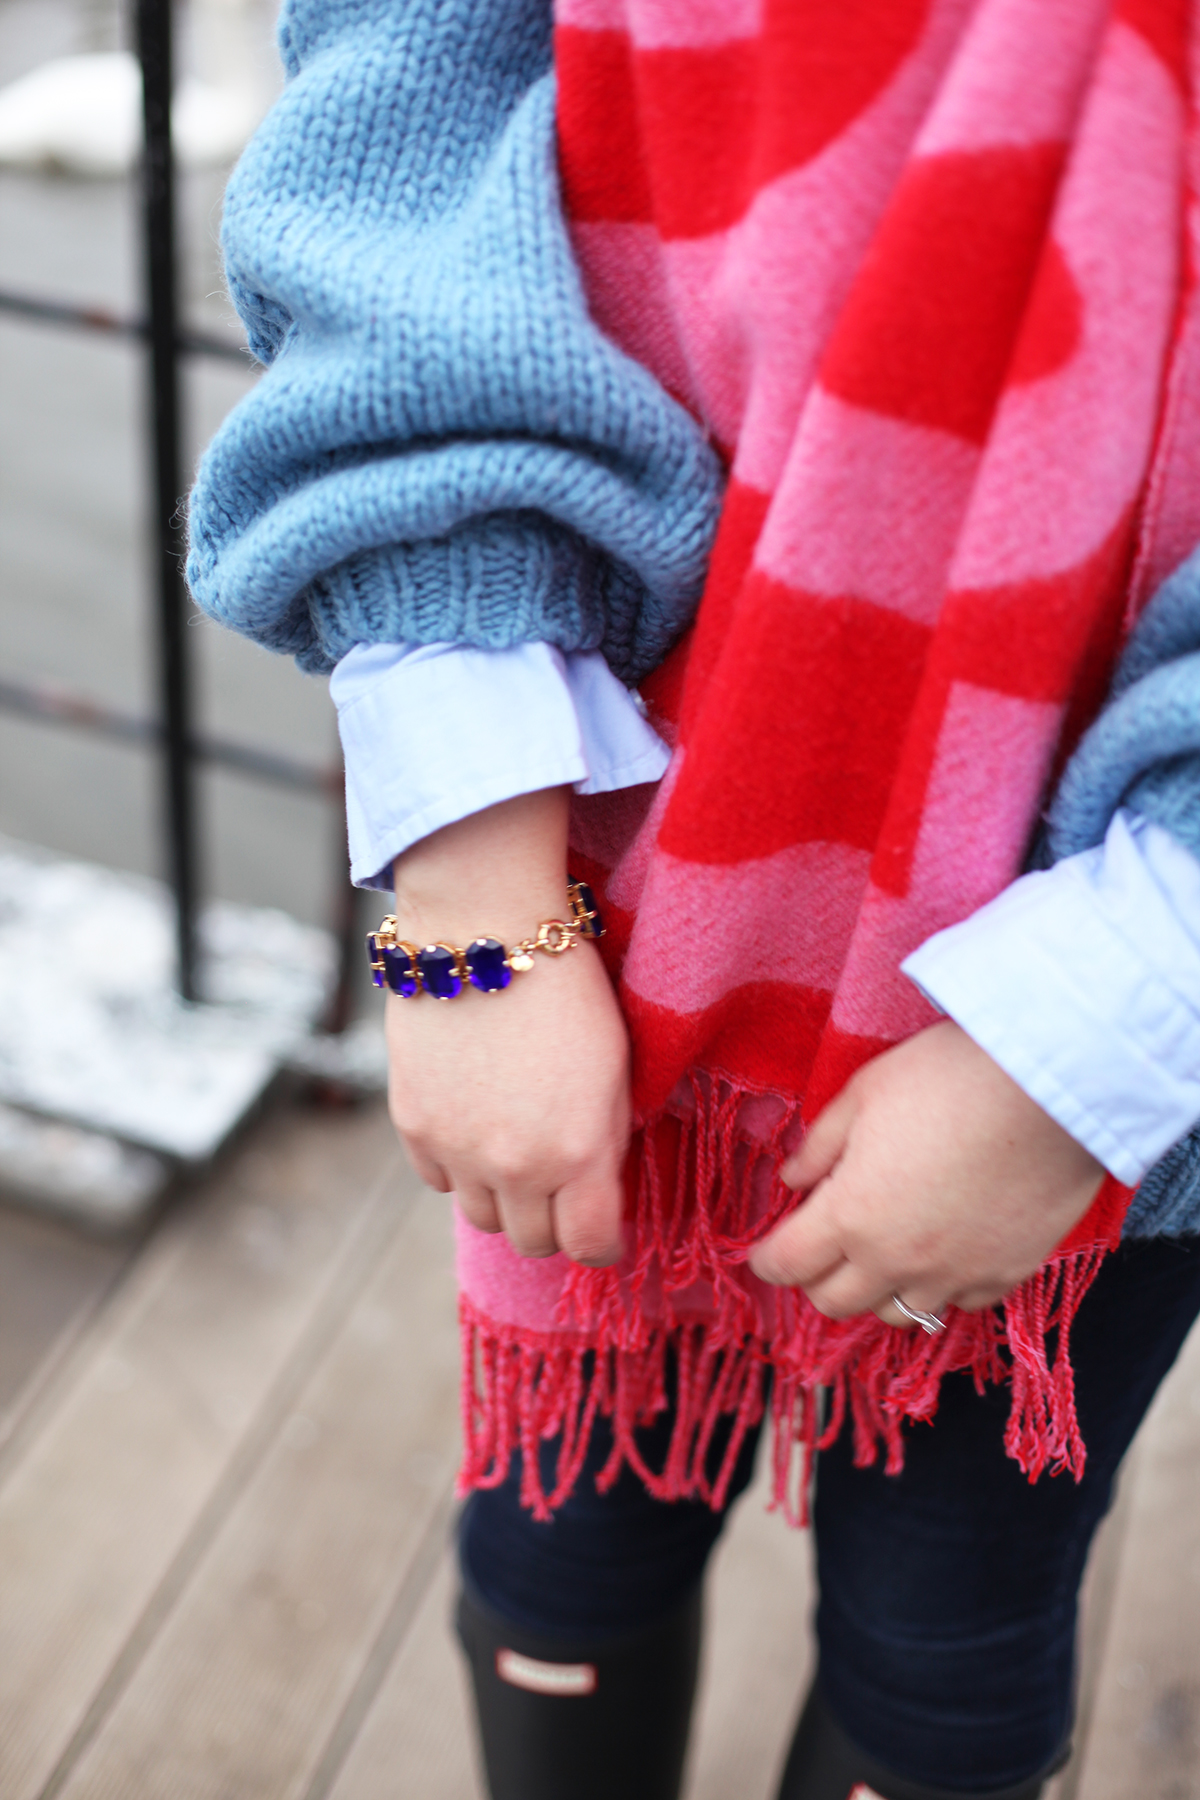 accessories from J.crew.